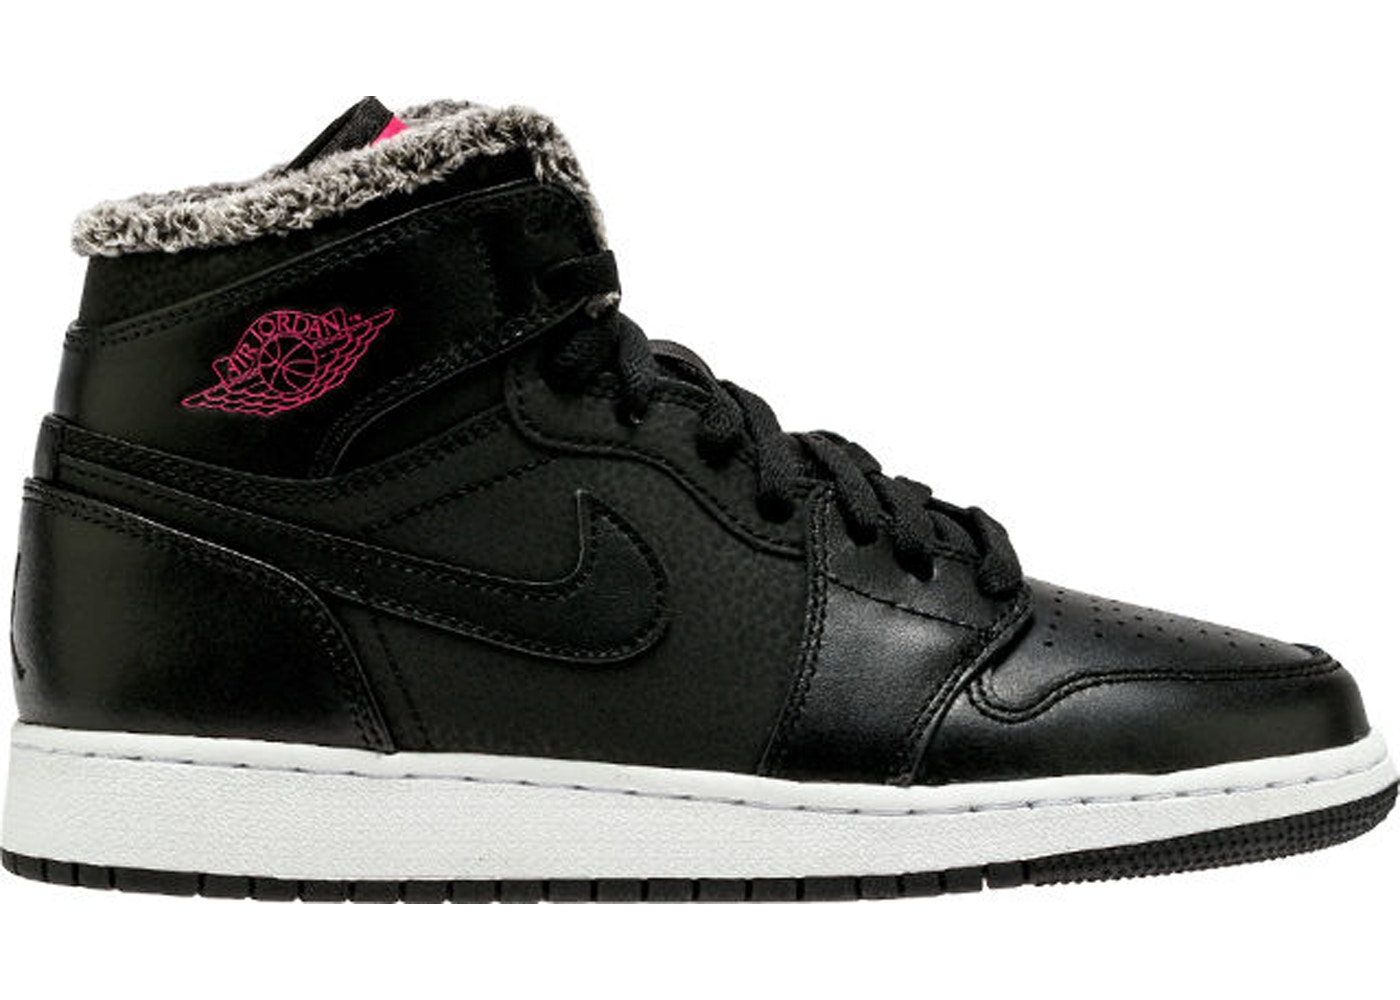 outlet store 28a80 14ff8 Jordan 1 Retro High Fleece Black Pink (GS) - 332148-014